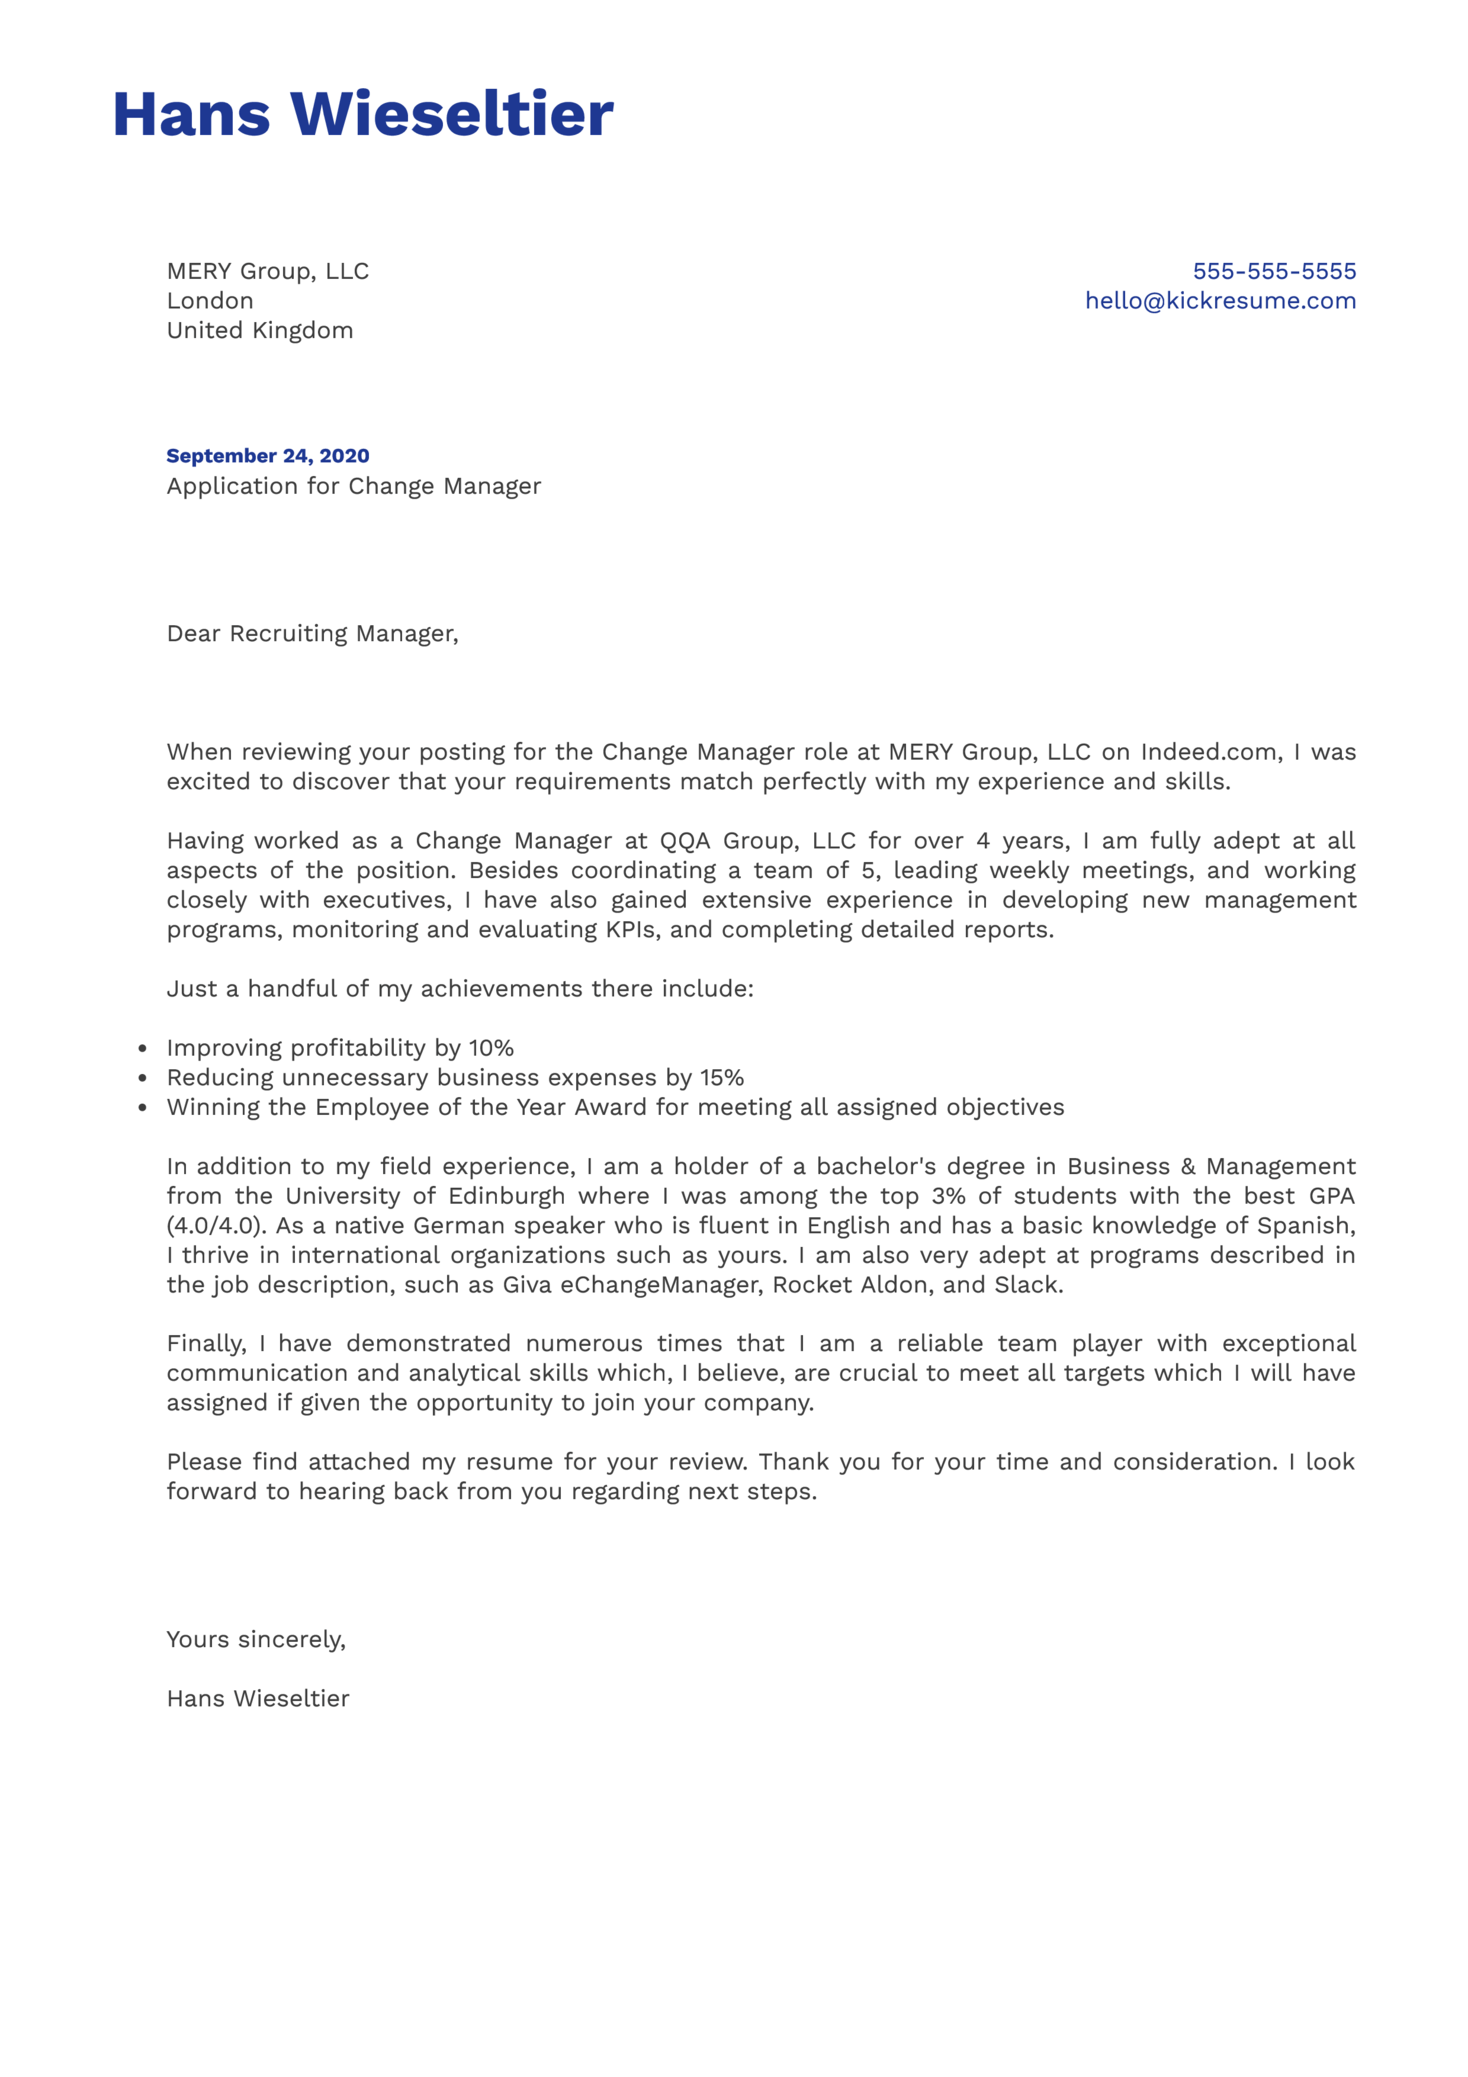 Change Manager Cover Letter Example